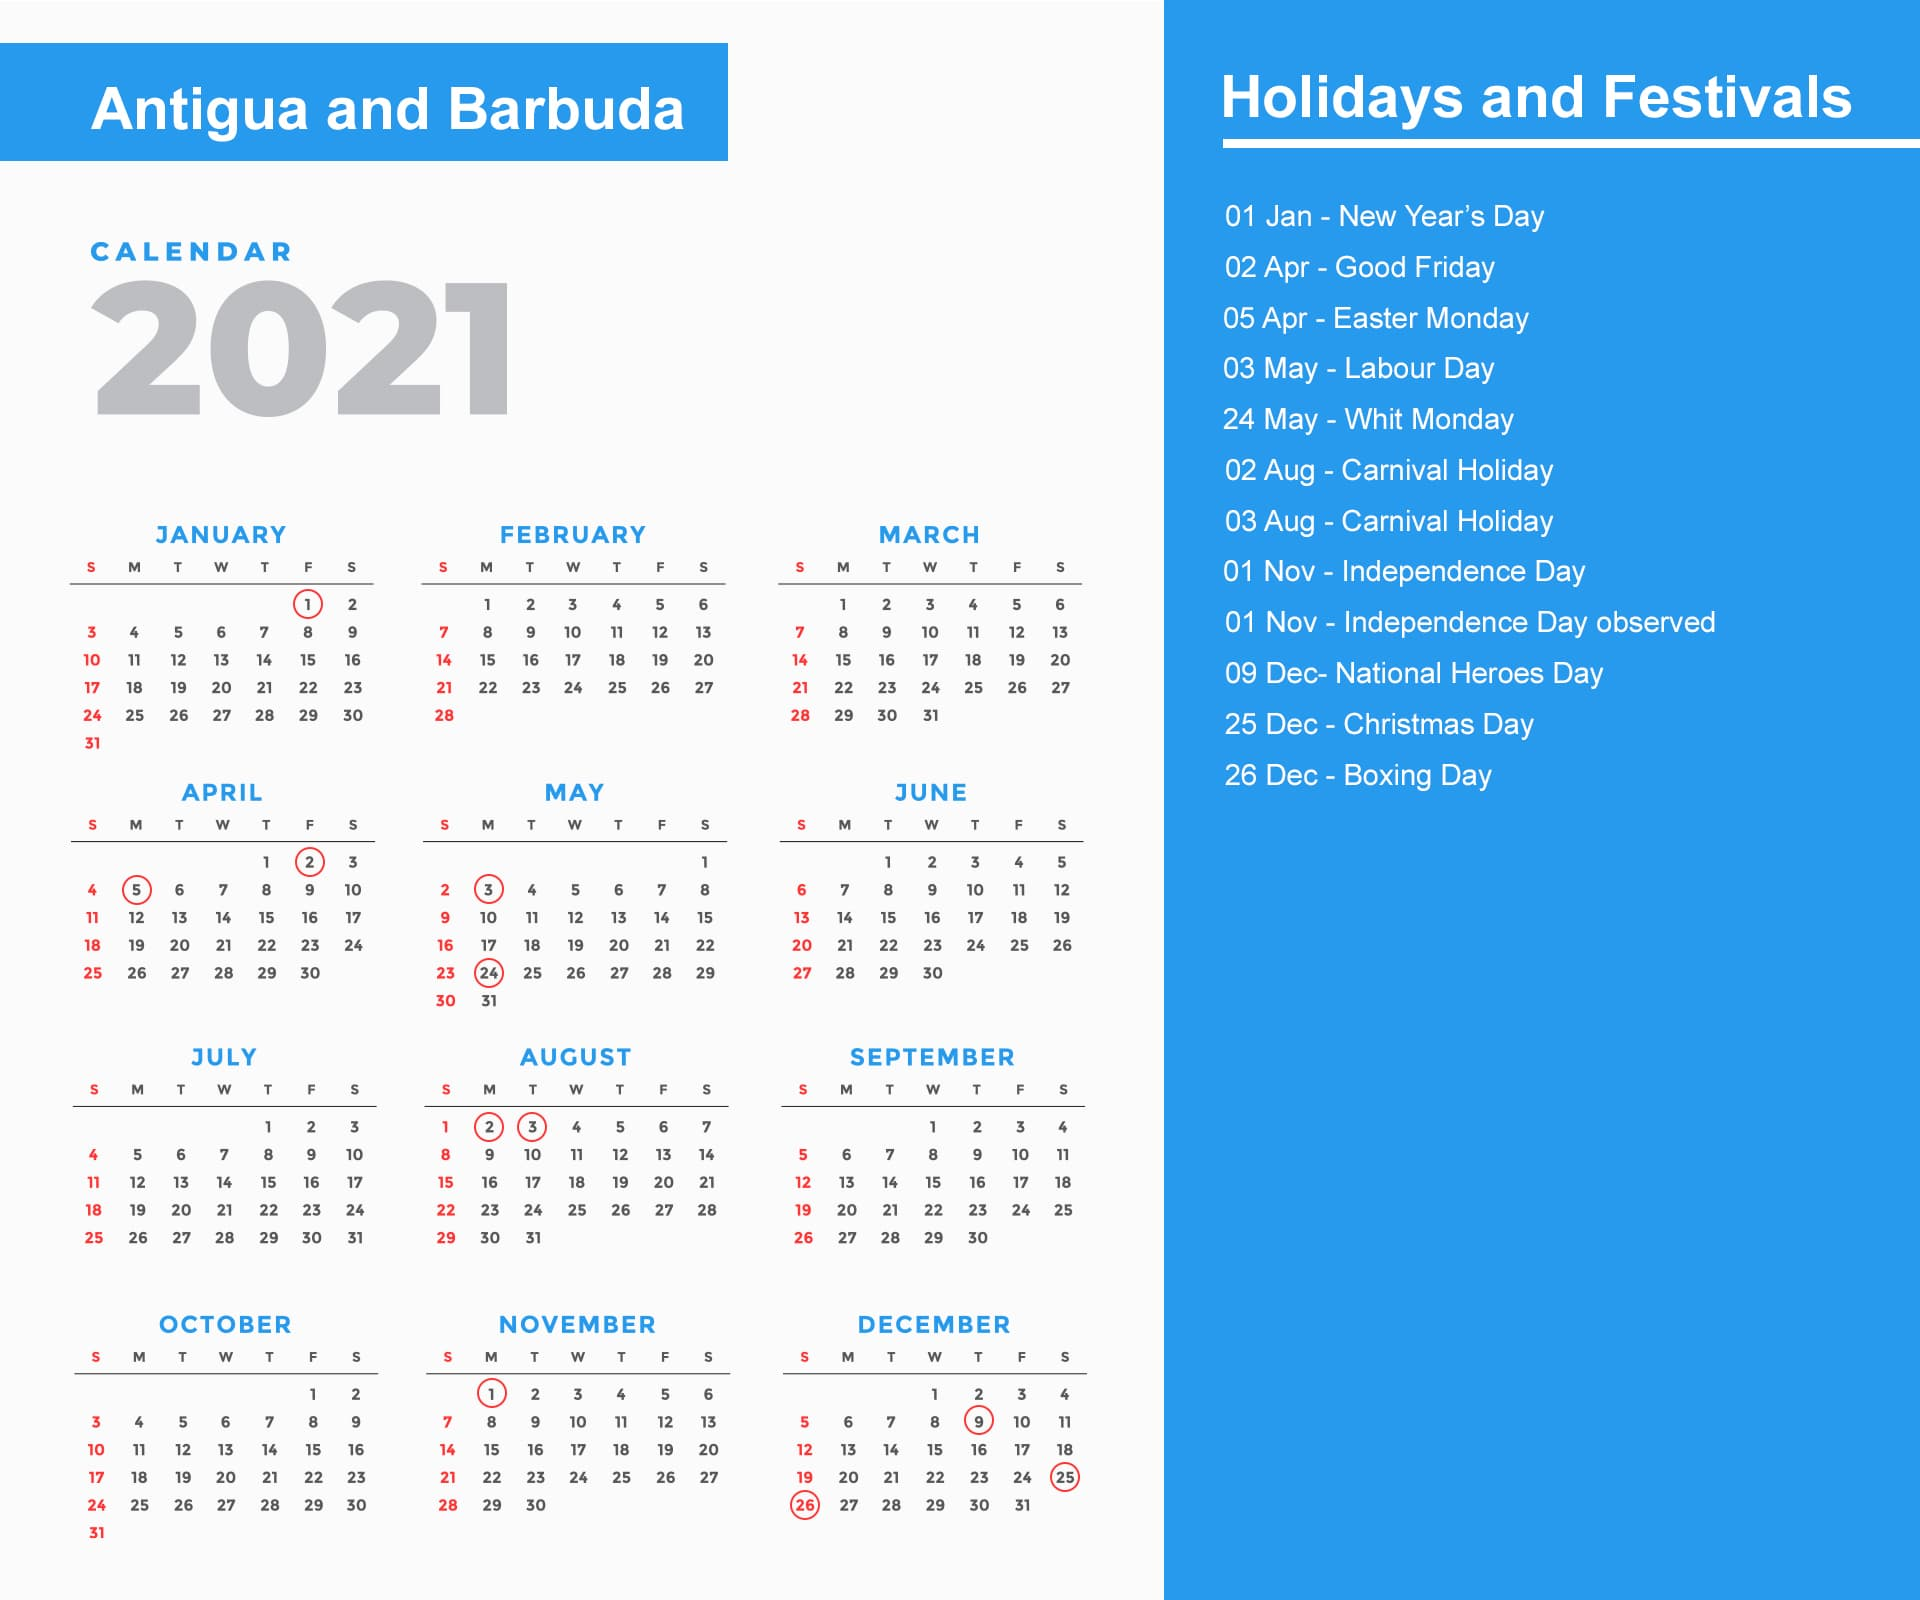 Antigua and Barbuda Holidays Calendar 2021